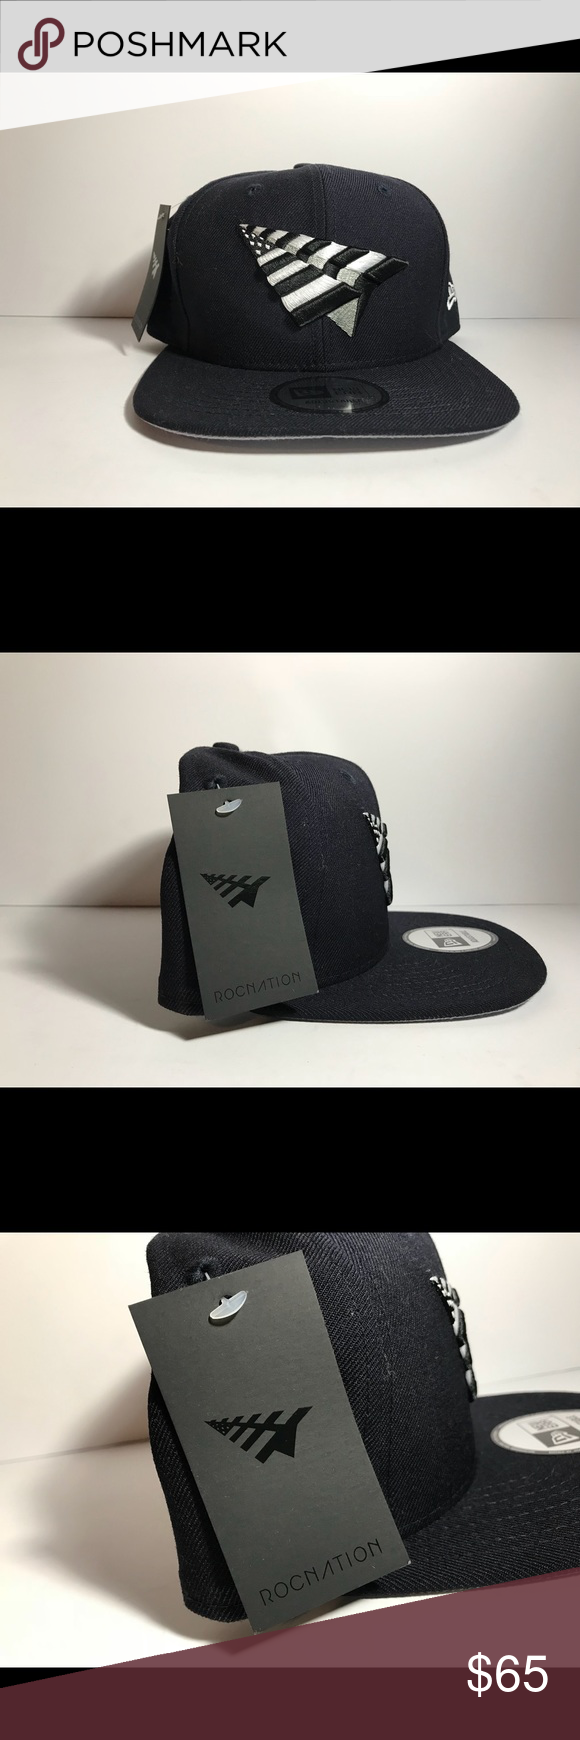 451b20a03ec Roc Nation Paper Plane Old School Crown Navy Grey Roc Nation Paper Plane  Old School Crown Snapback in Navy Grey Navy is a rare color!